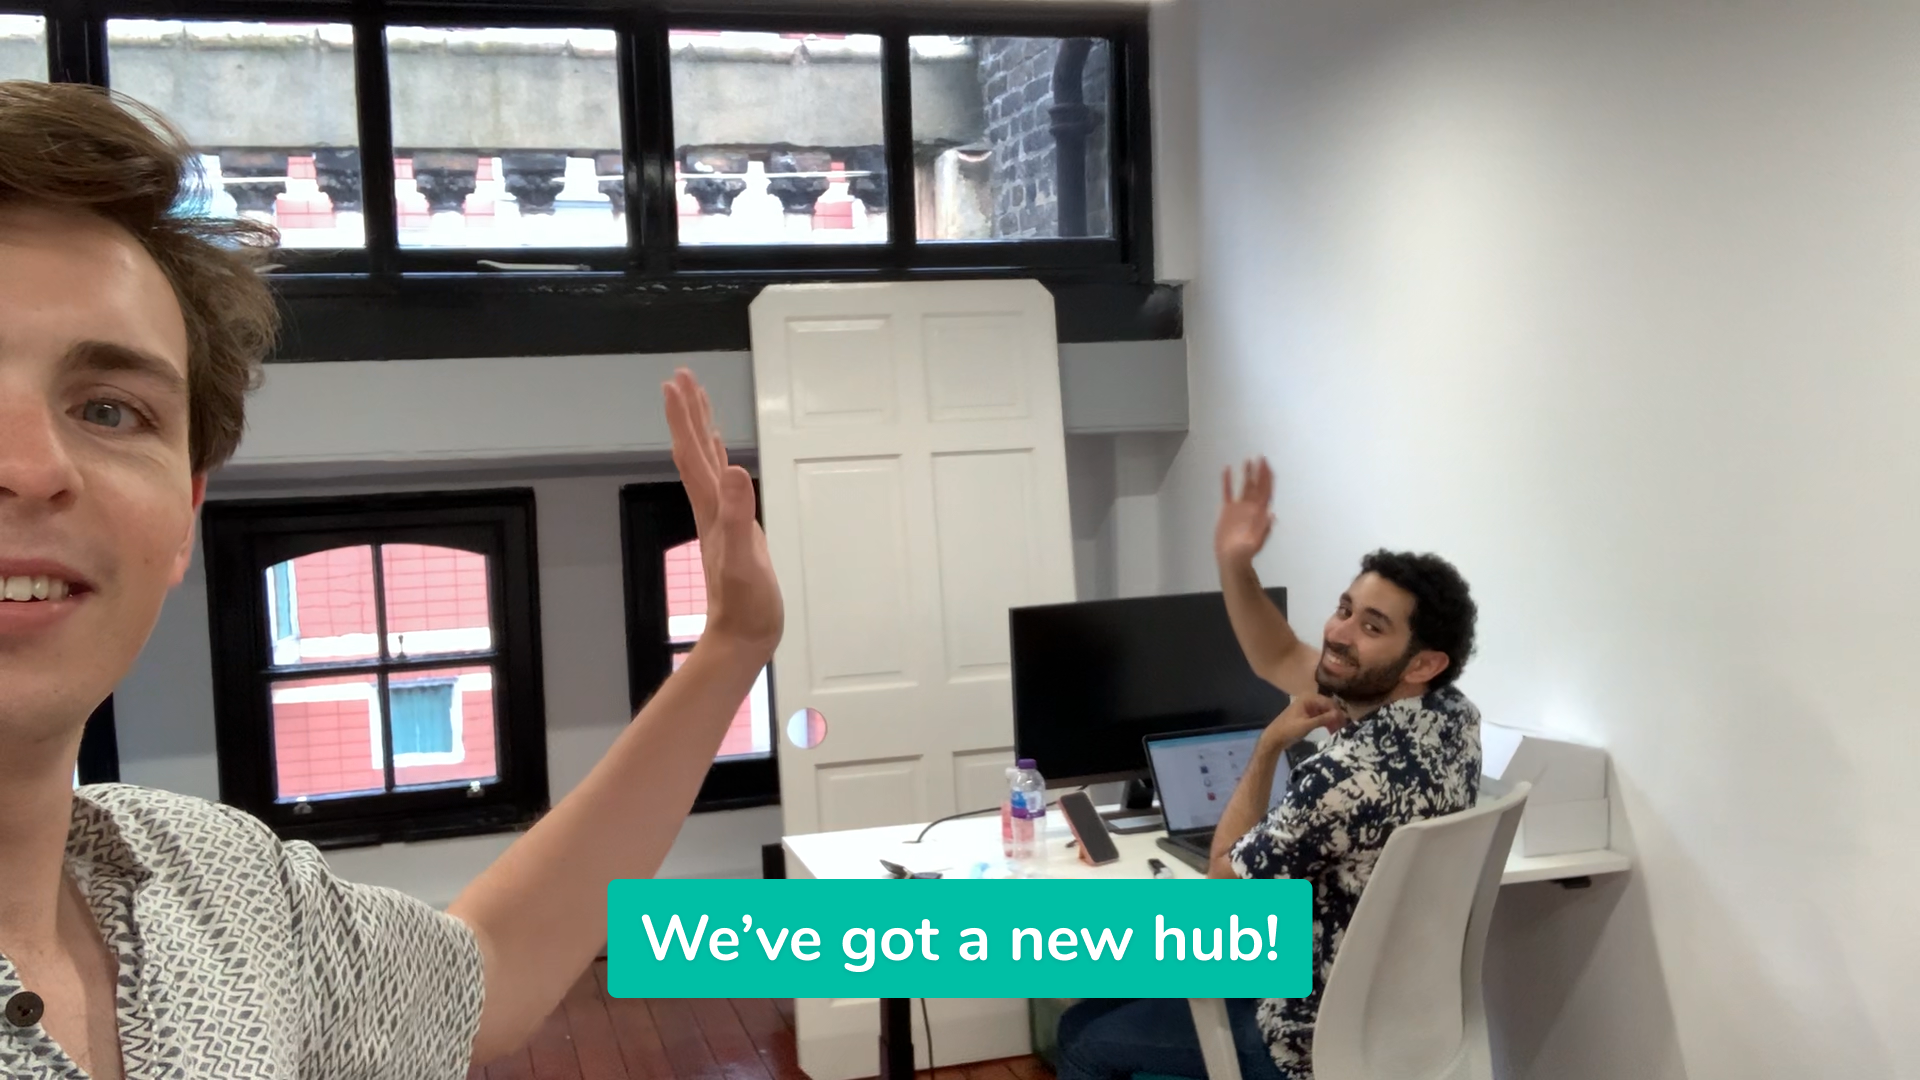 Our new hub